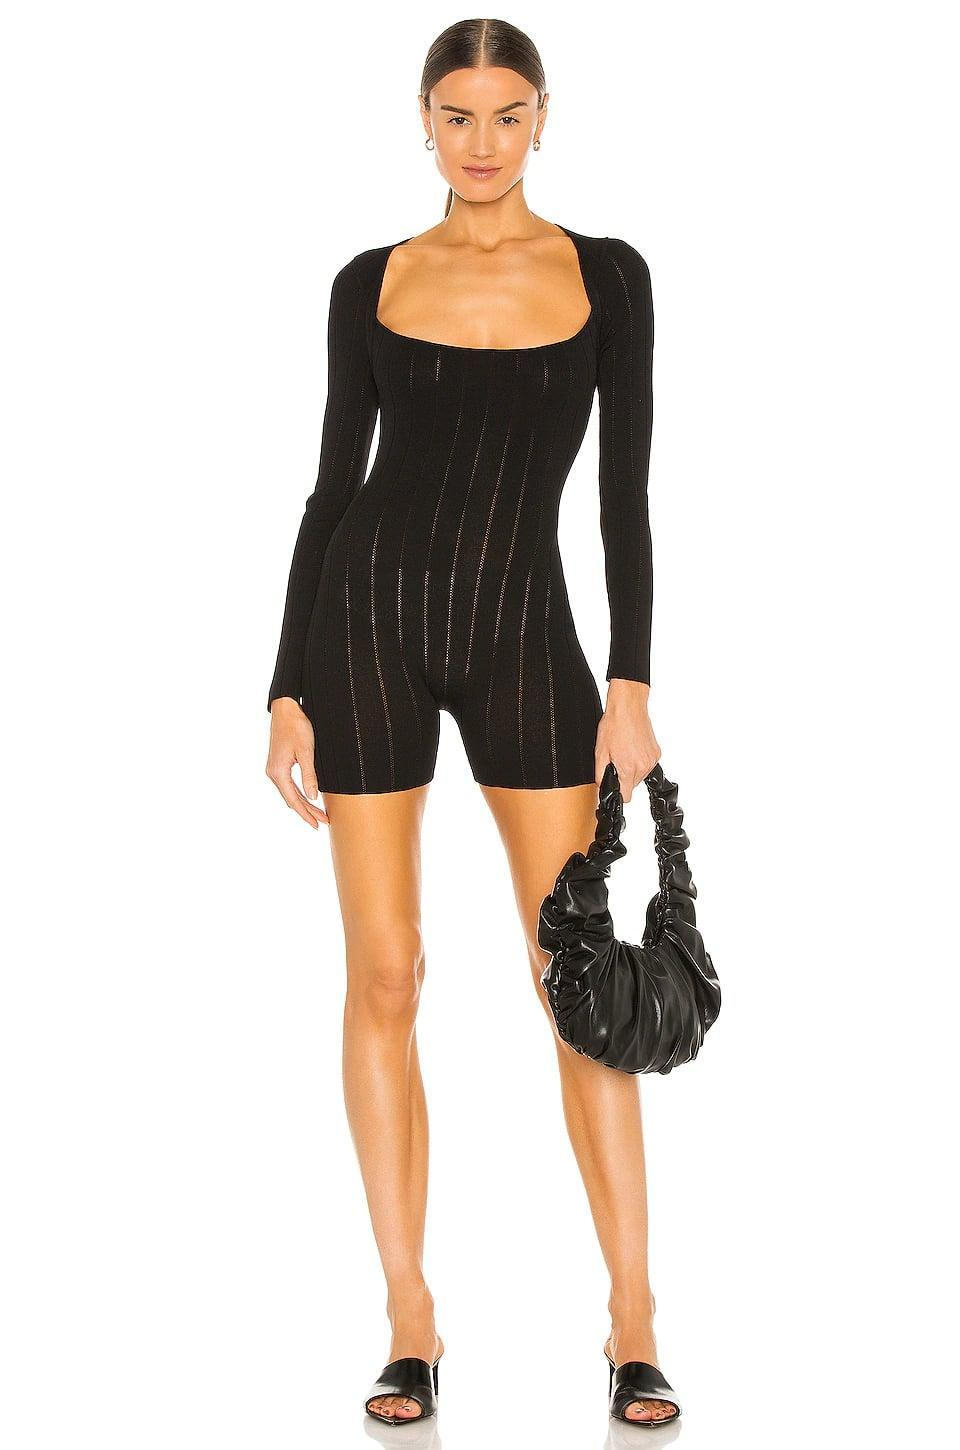 <p>Aya Muse makes great knit rompers, and this <span>Aya Muse Fiona Romper</span> ($280) is the ultimate fall version. It's a little bit sheer and a little bit sexy, definitely suitable for a night out.</p>